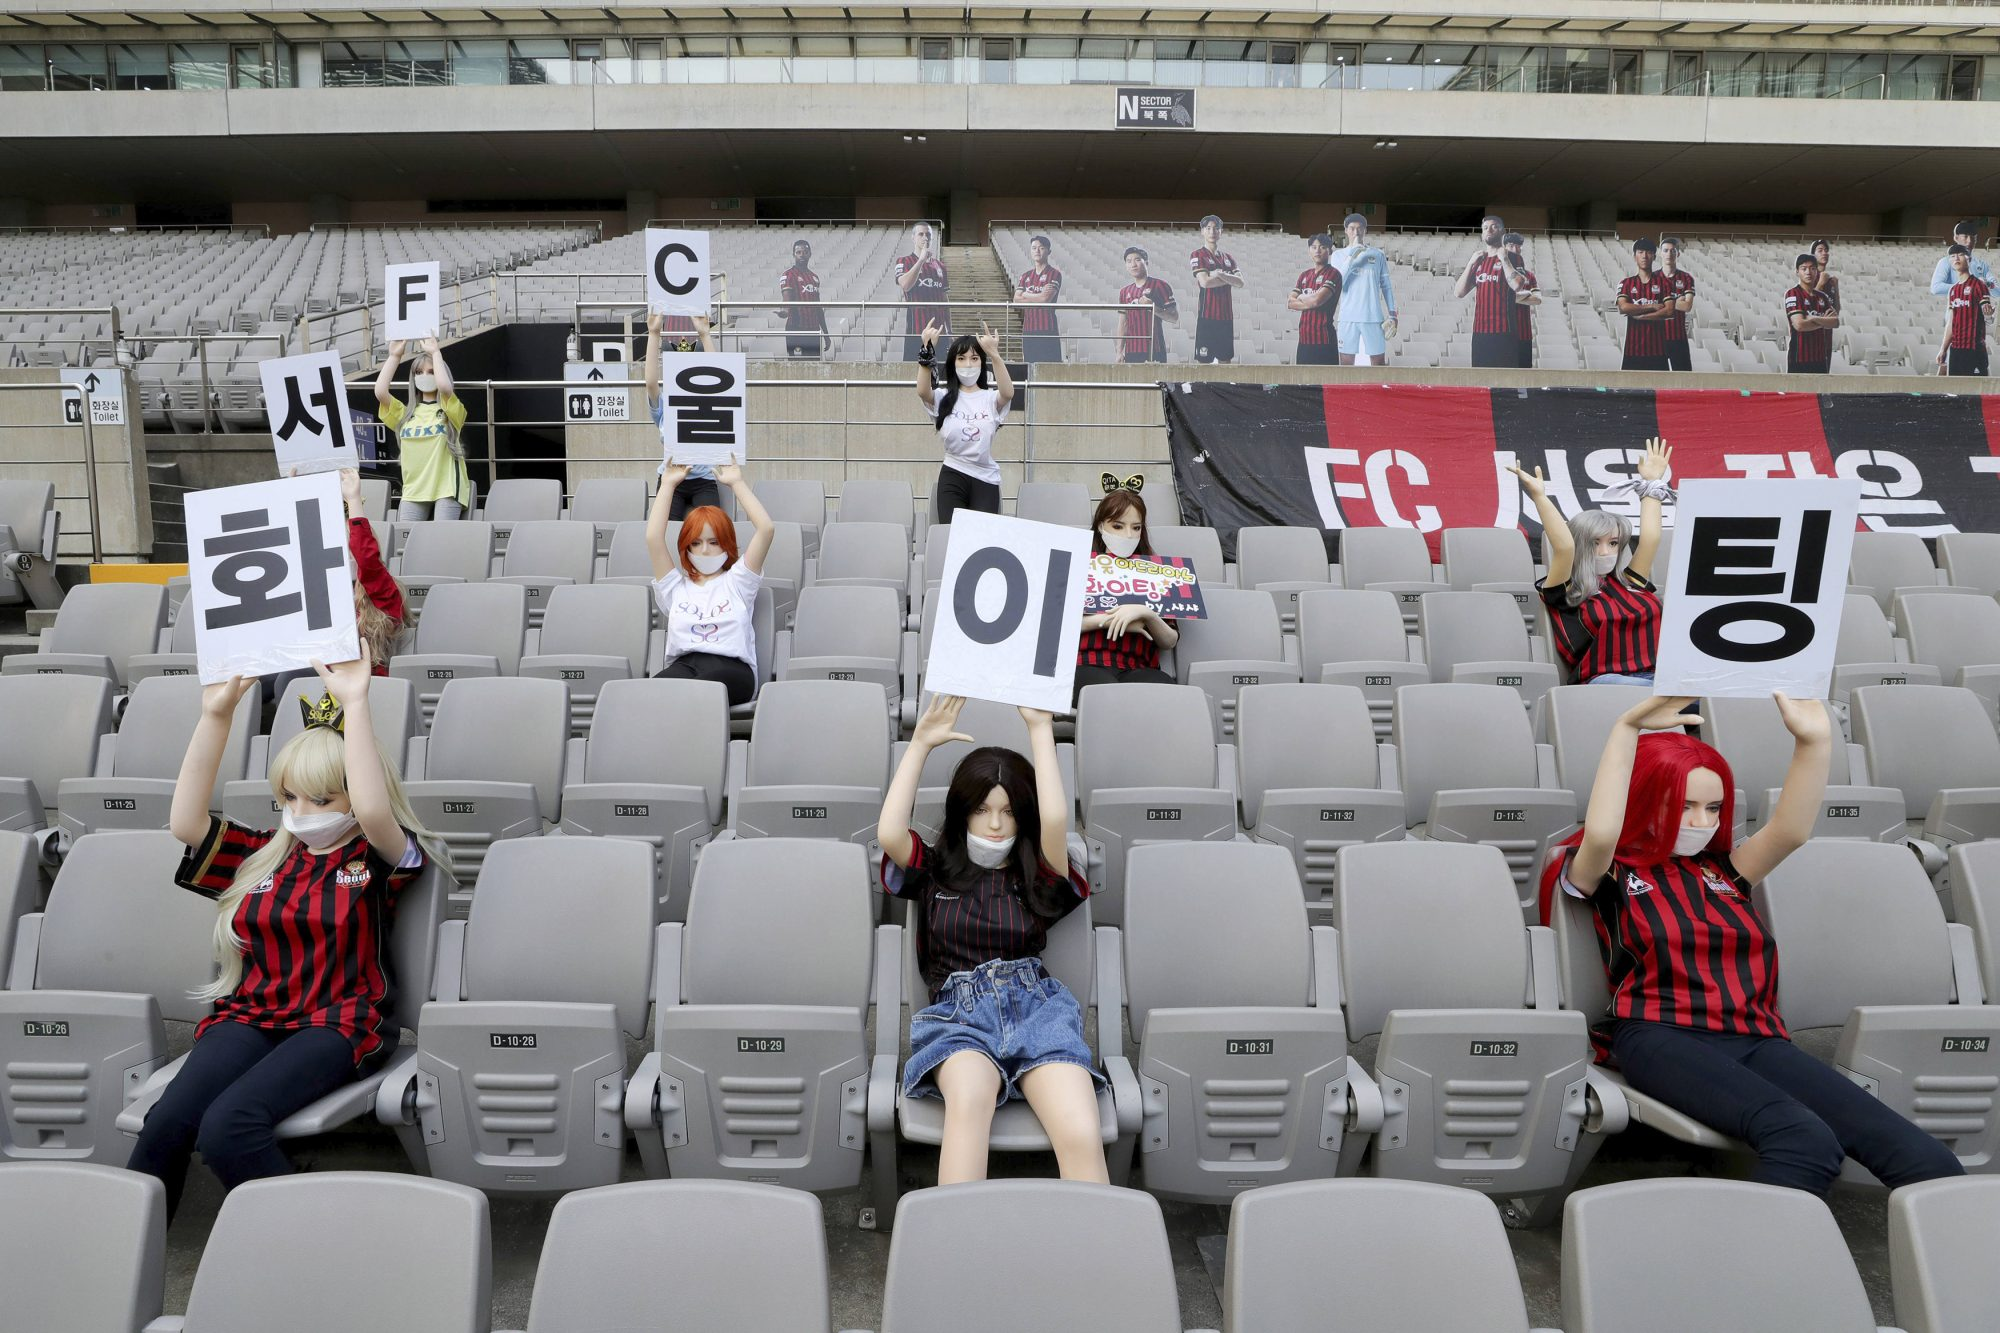 sex dolls in empty stands